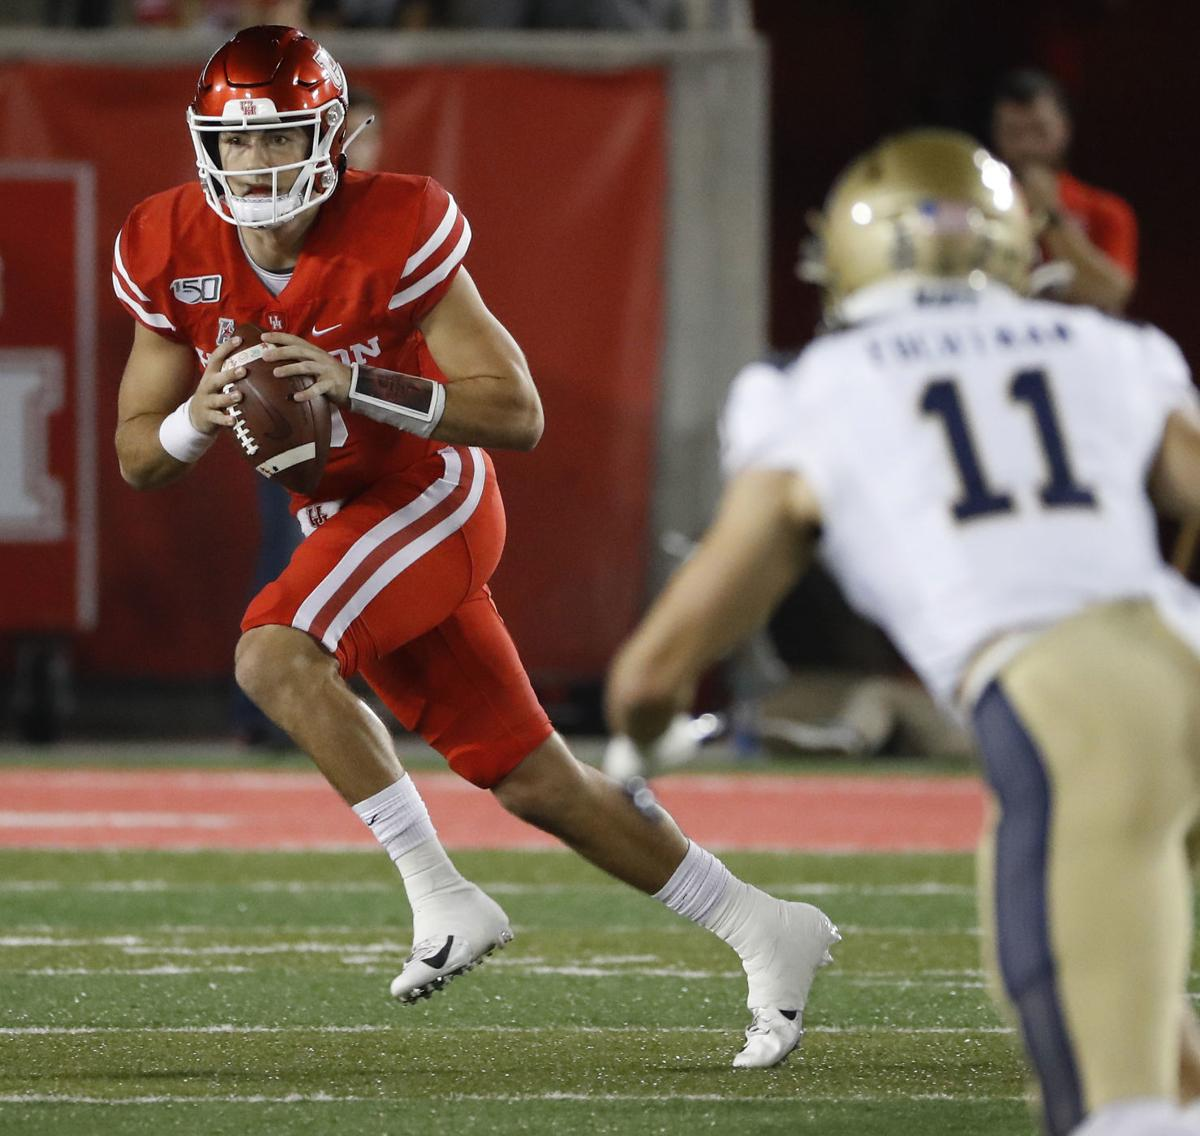 Houston Cougars vs. Navy Midshipmen